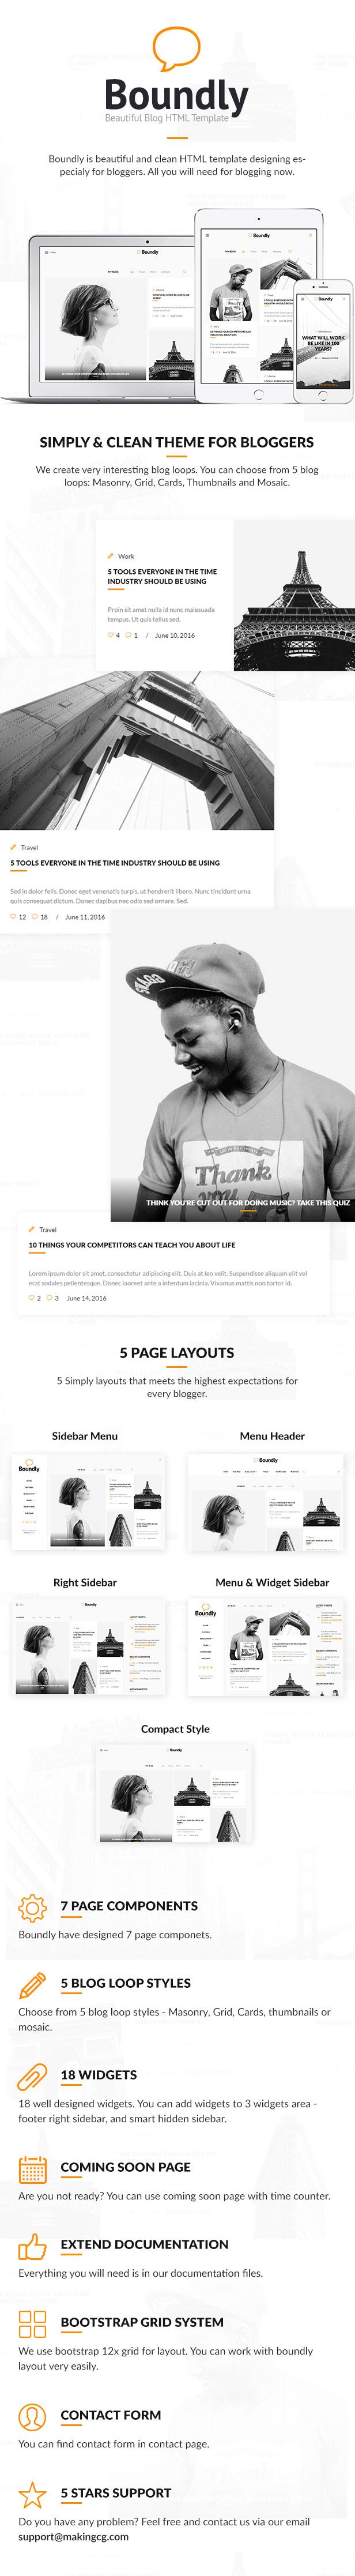 Boundly - Beautiful Blog HTML Template